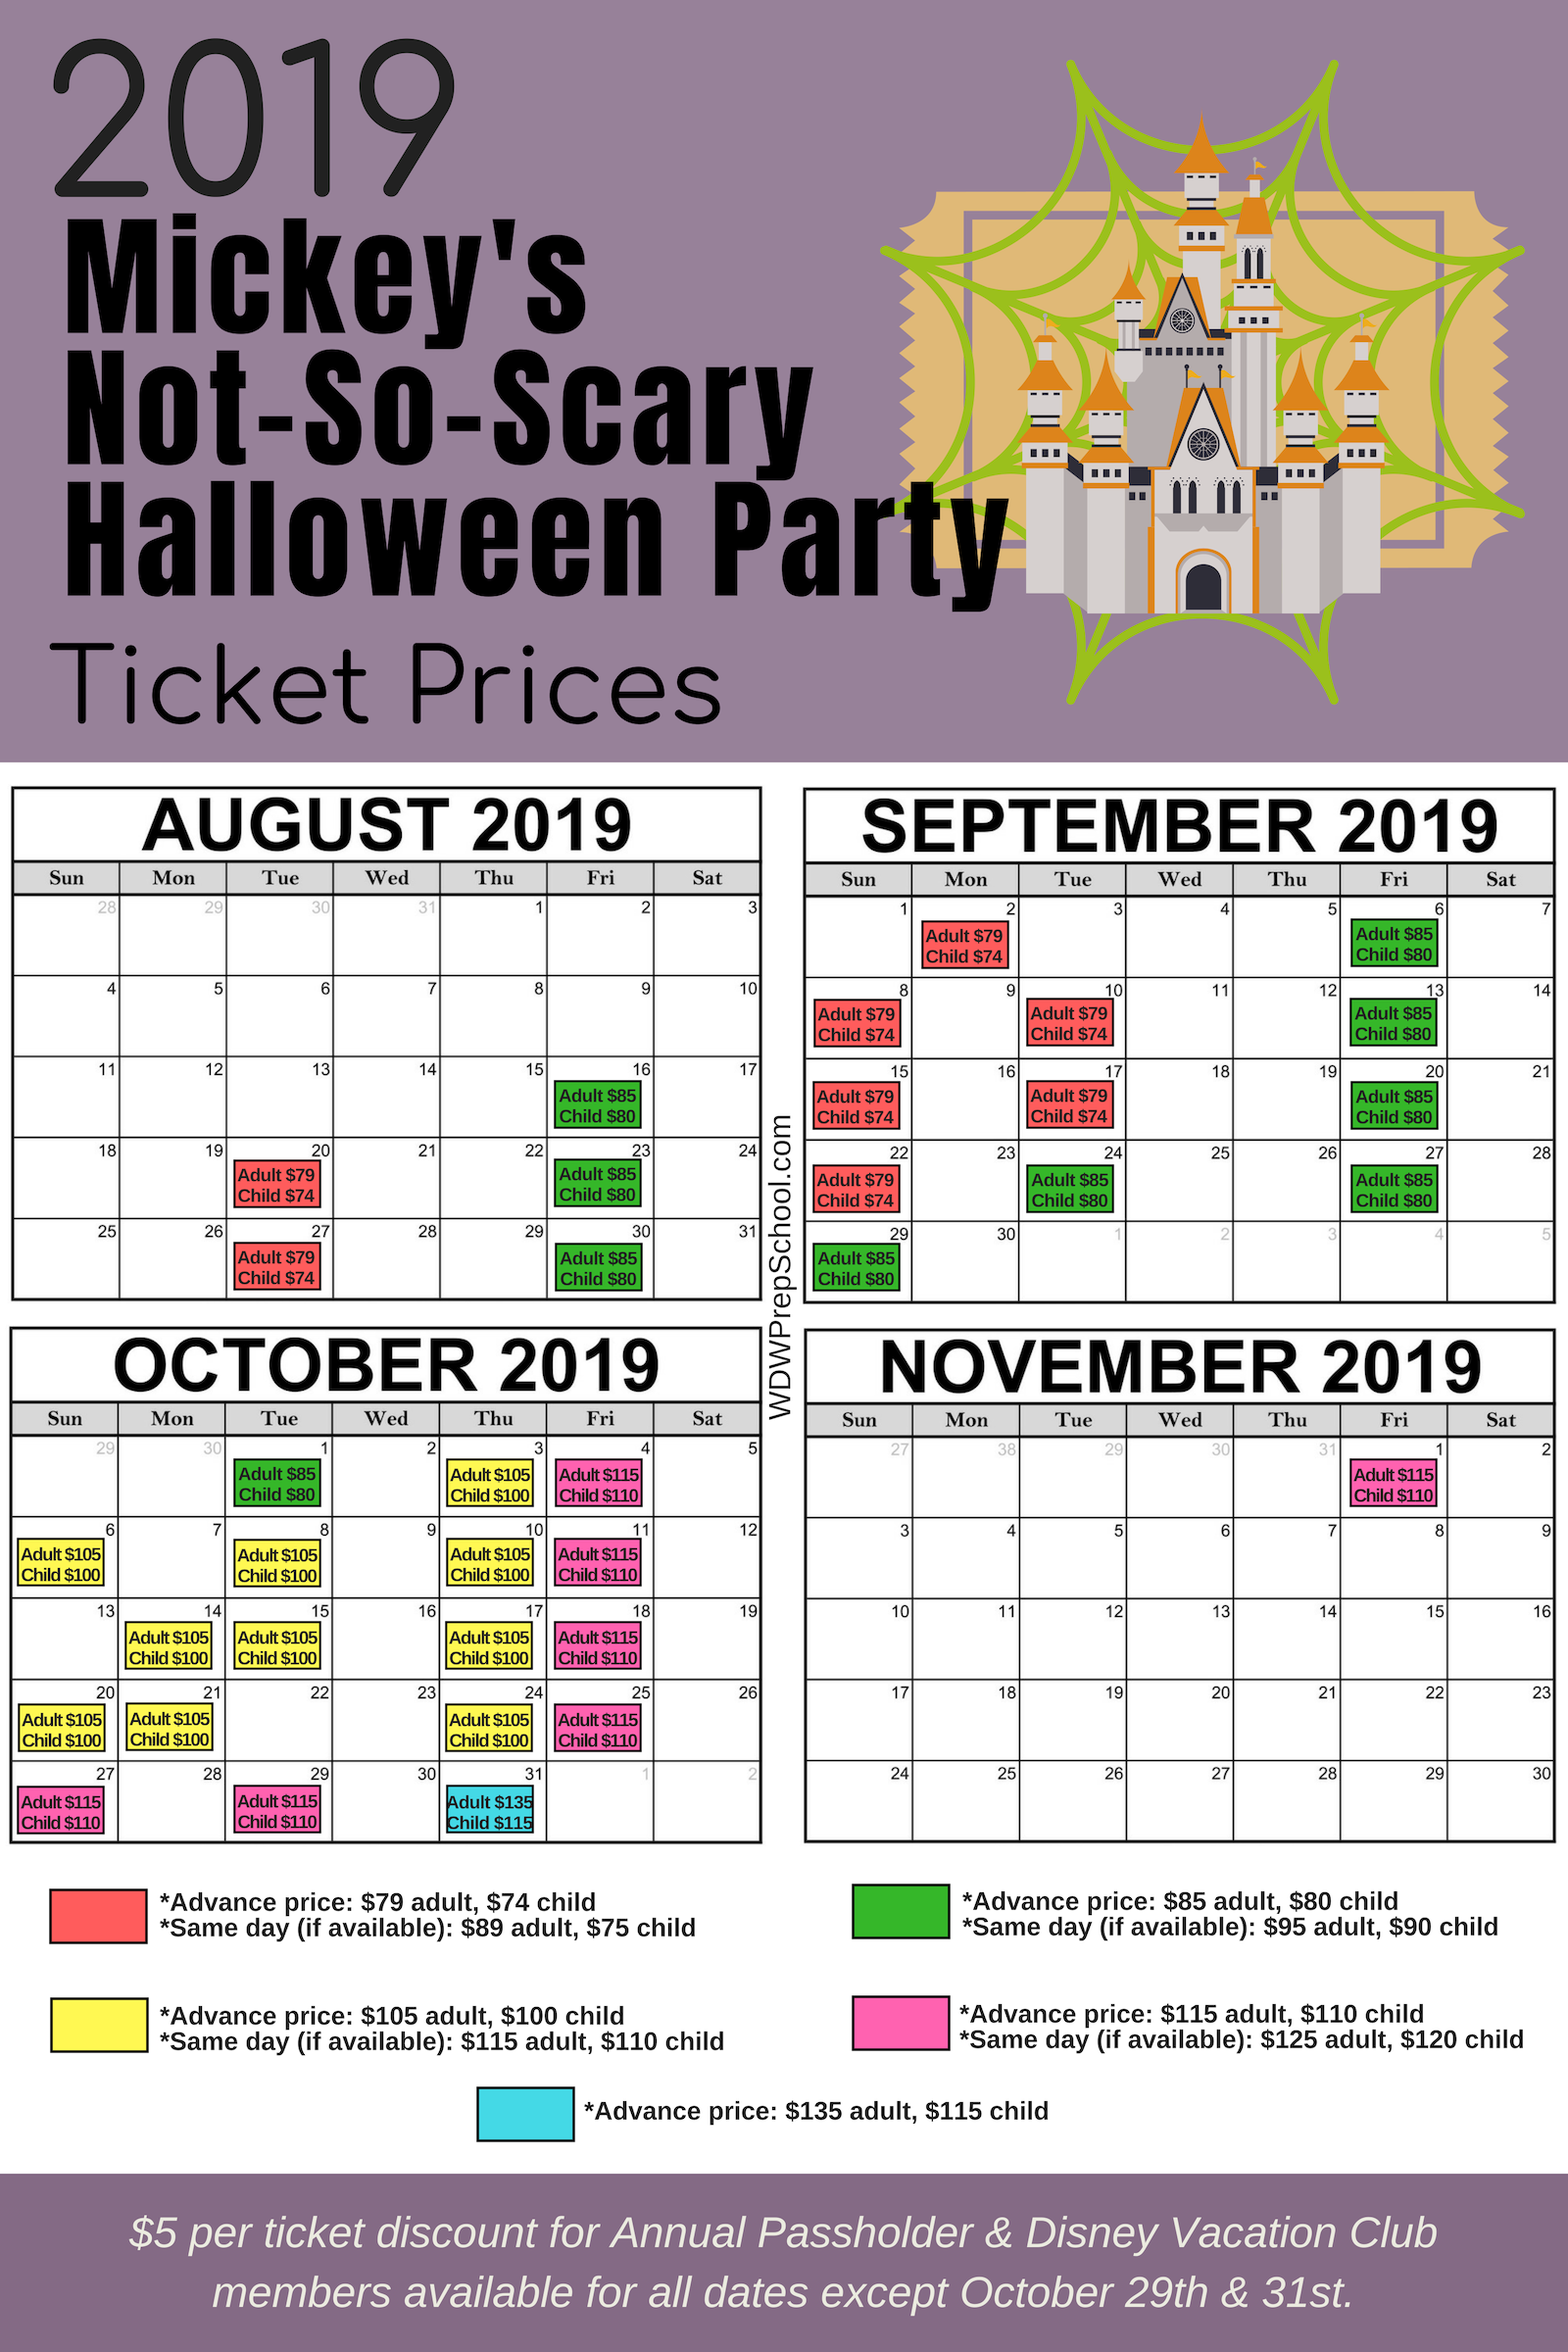 2019 Mickeys NotSoScary Halloween Party ticket prices